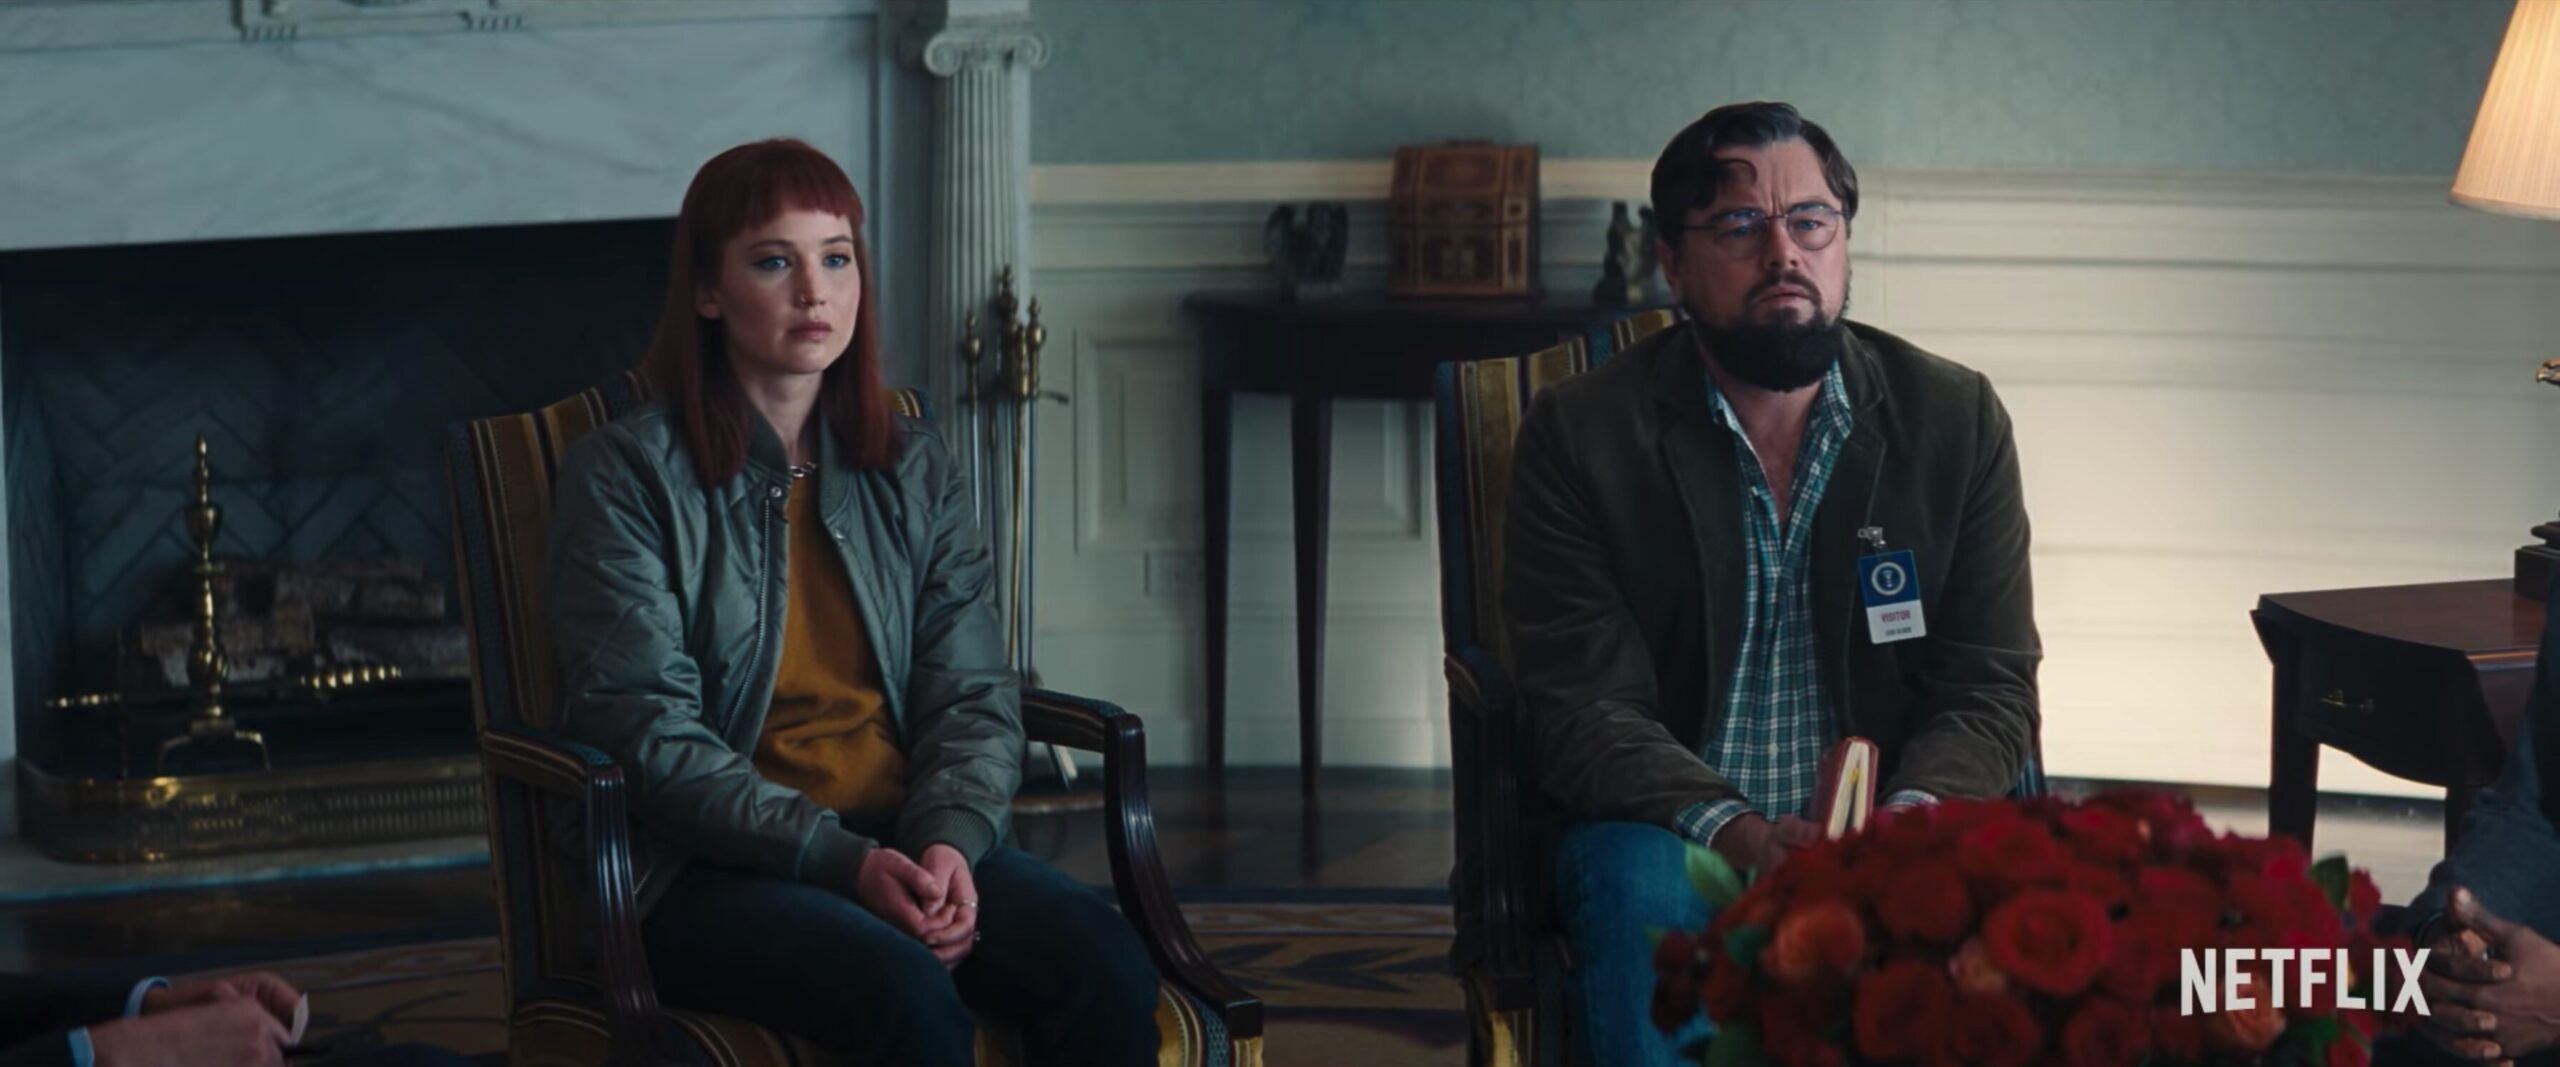 <i>Netflix</i><br/>'Don't Look Up' trailer is here and it's filled with every celebrity imaginable.